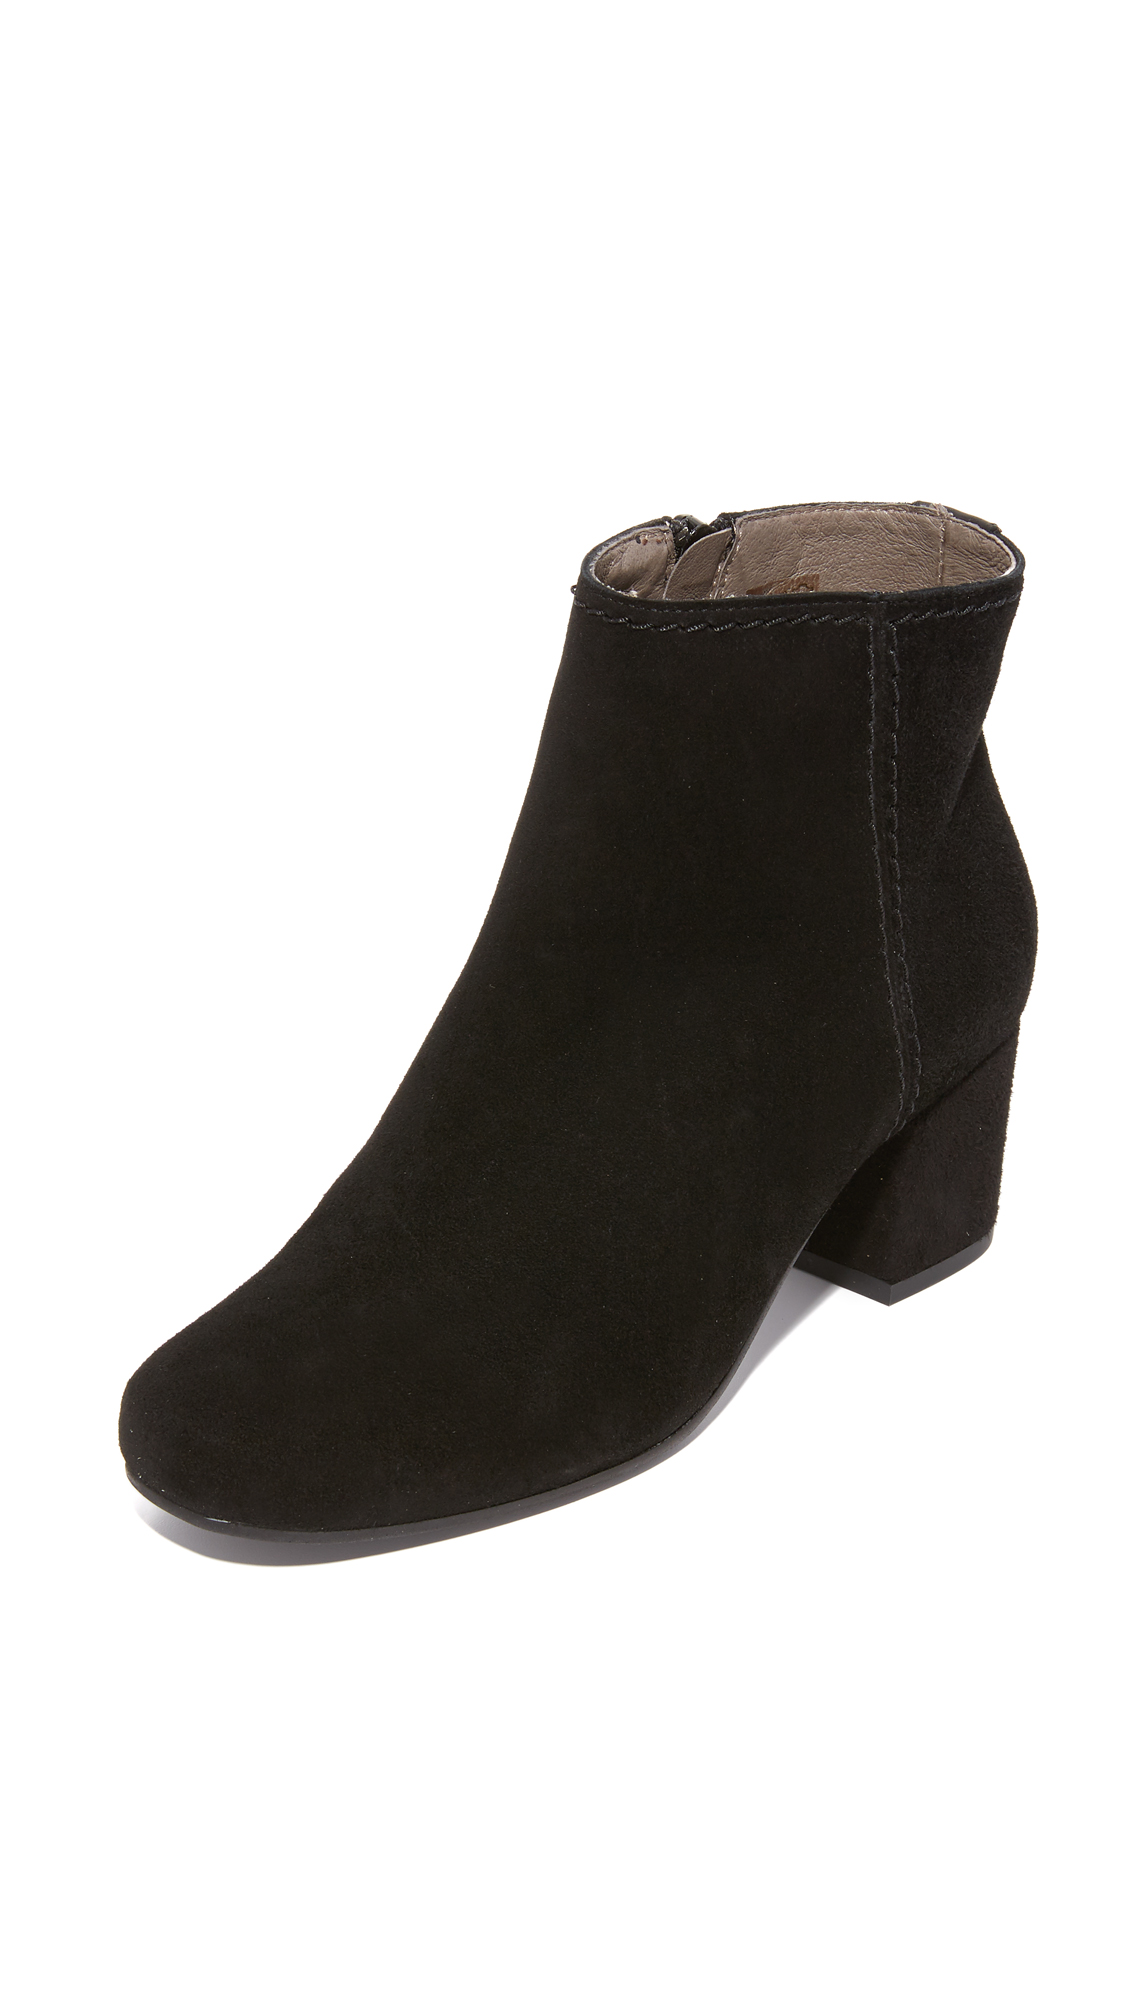 H By Hudson Garnett Booties - Black